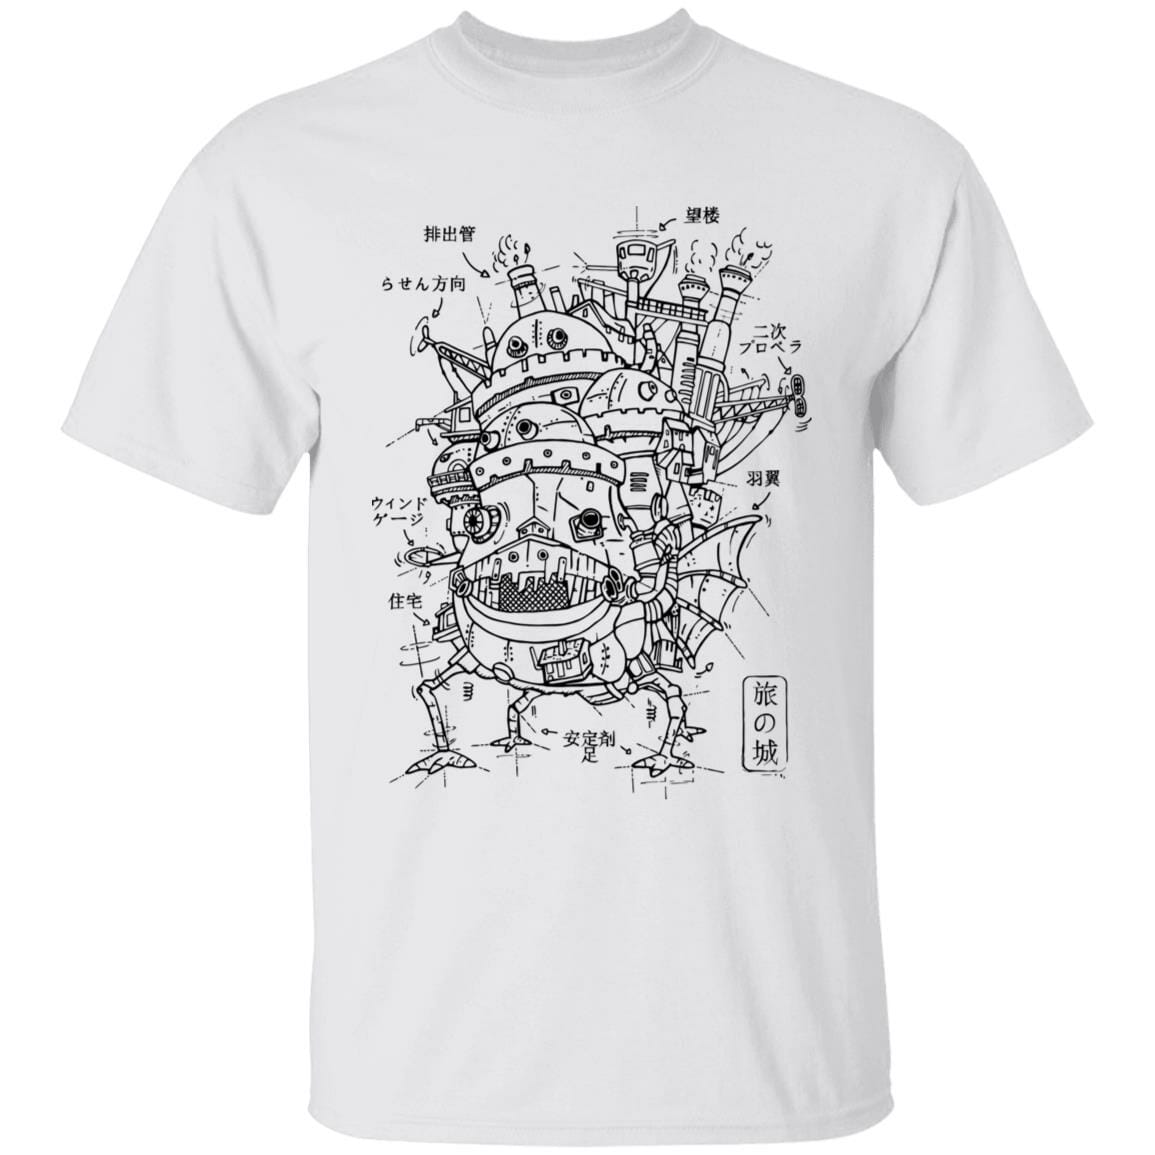 Howl's Moving Castle Sketch T Shirt